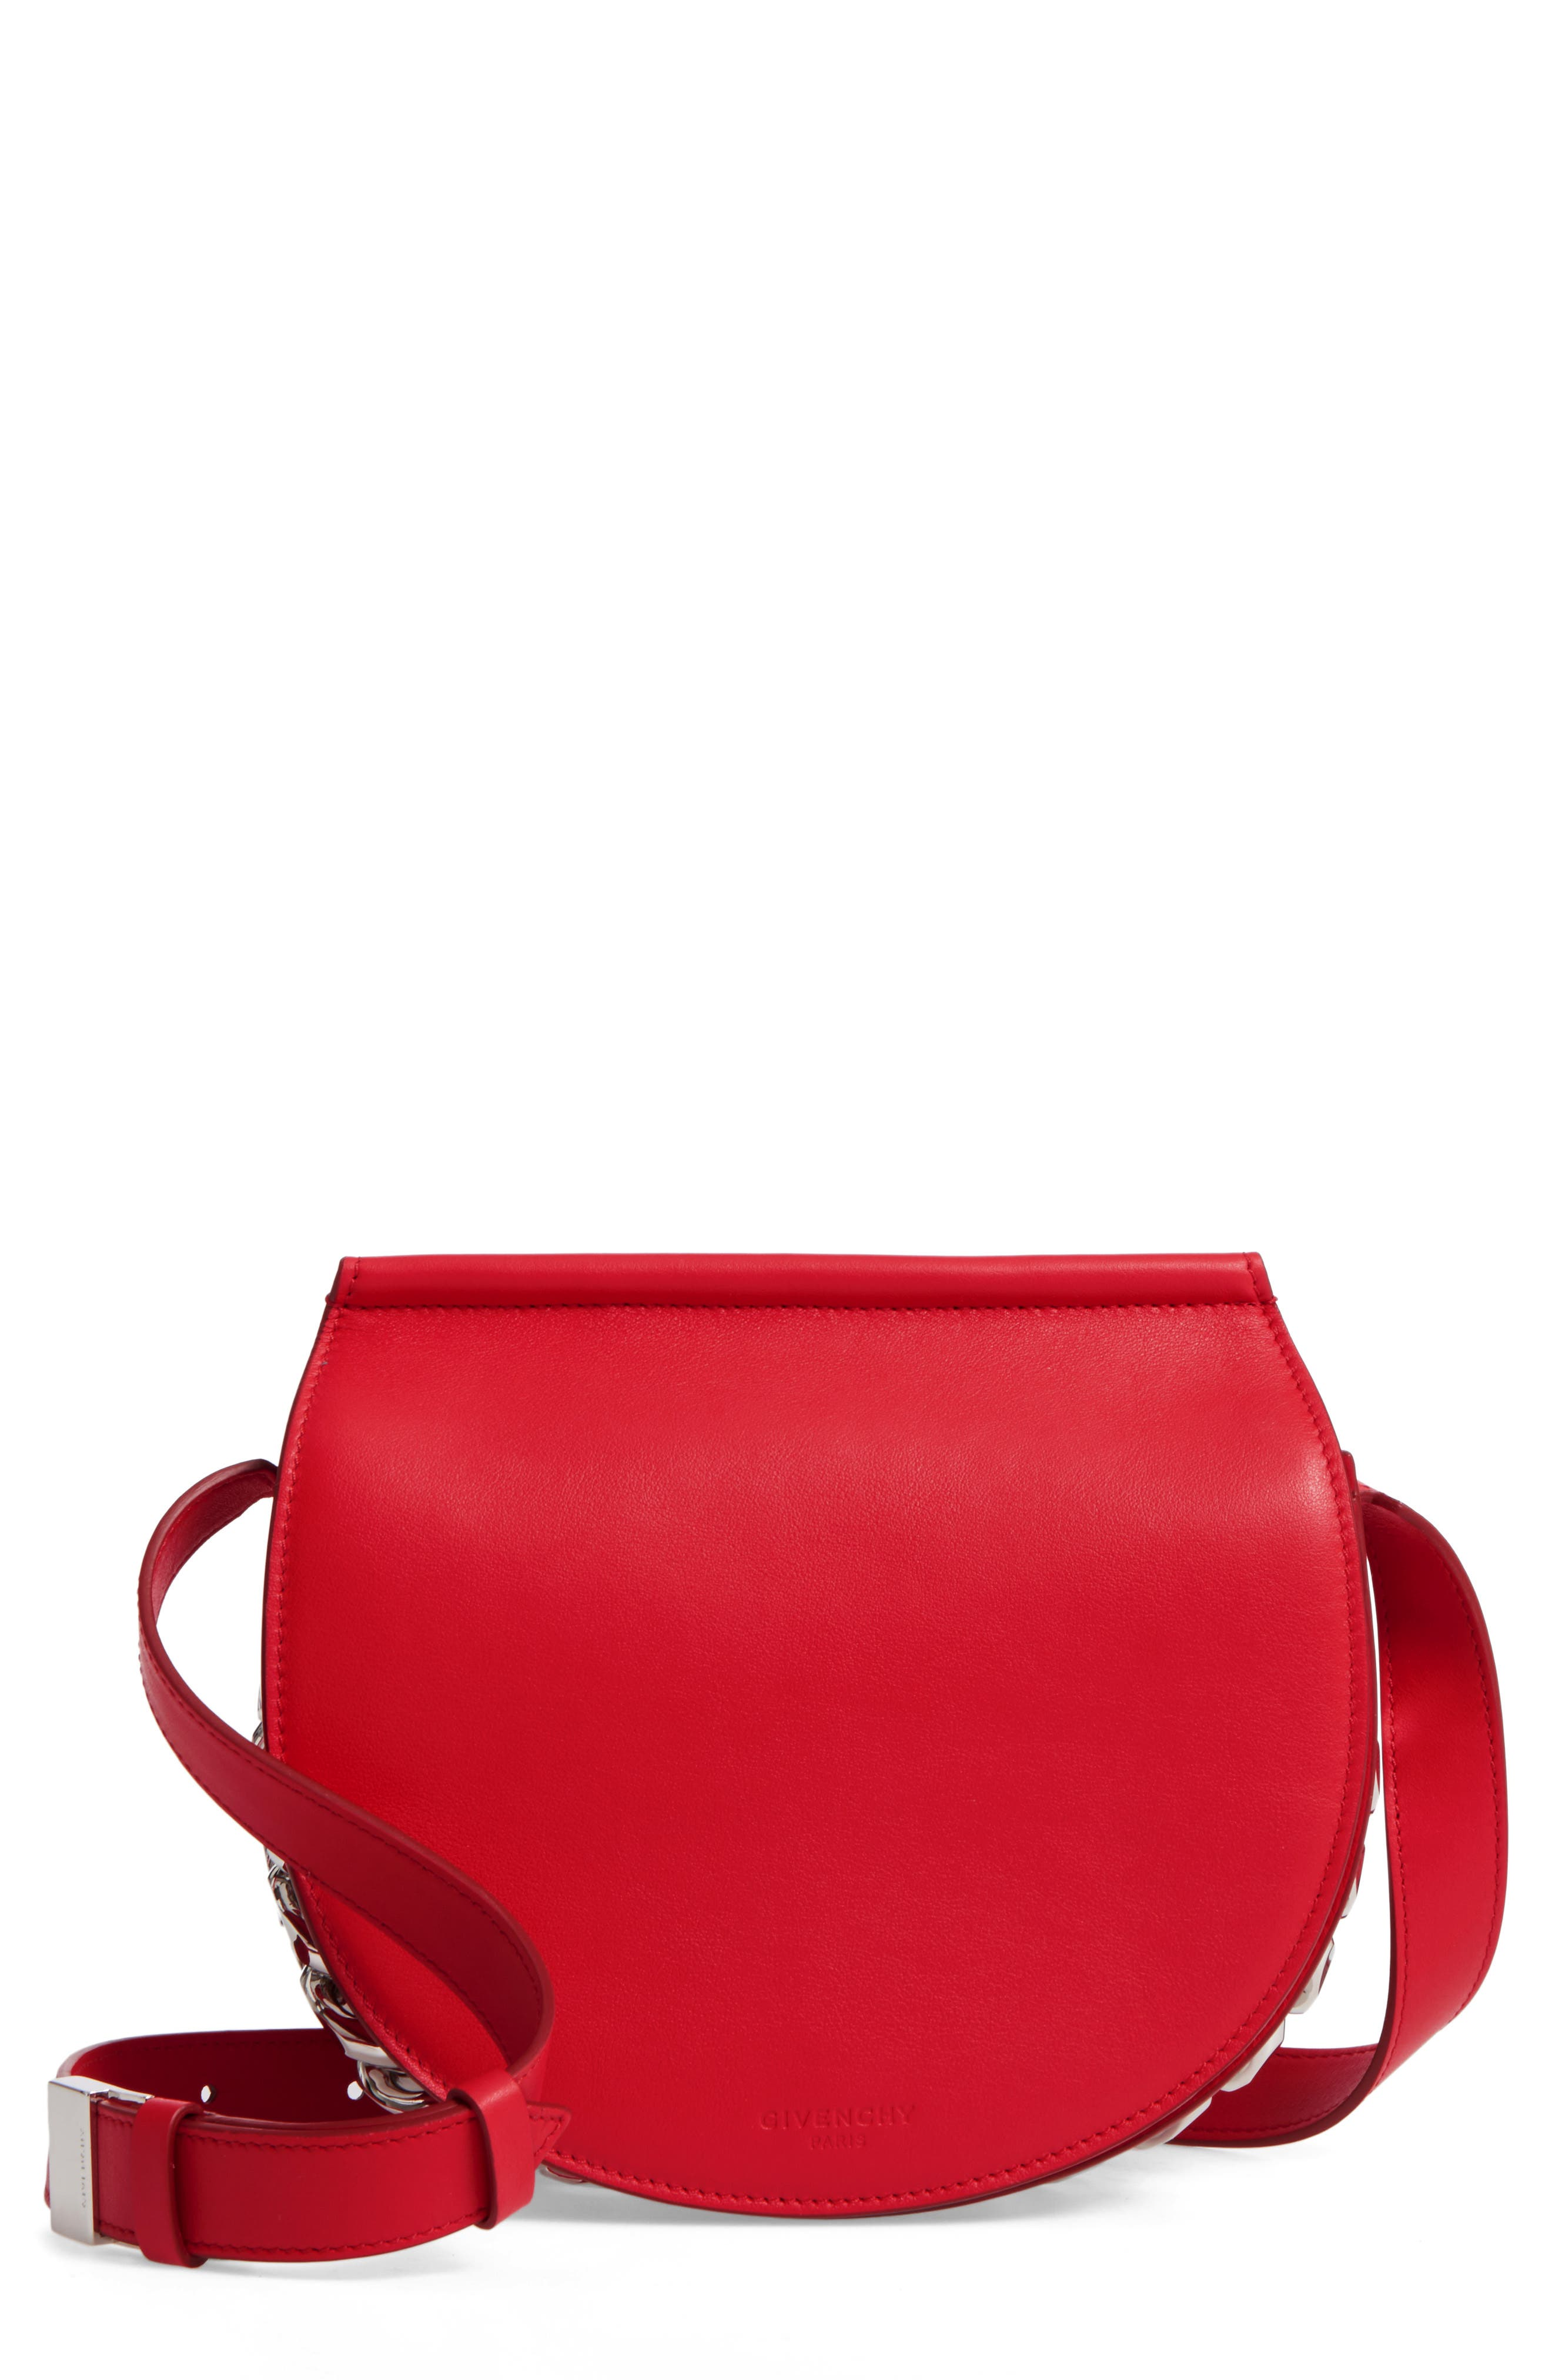 Givenchy Mini Infinity Calfskin Leather Saddle Bag